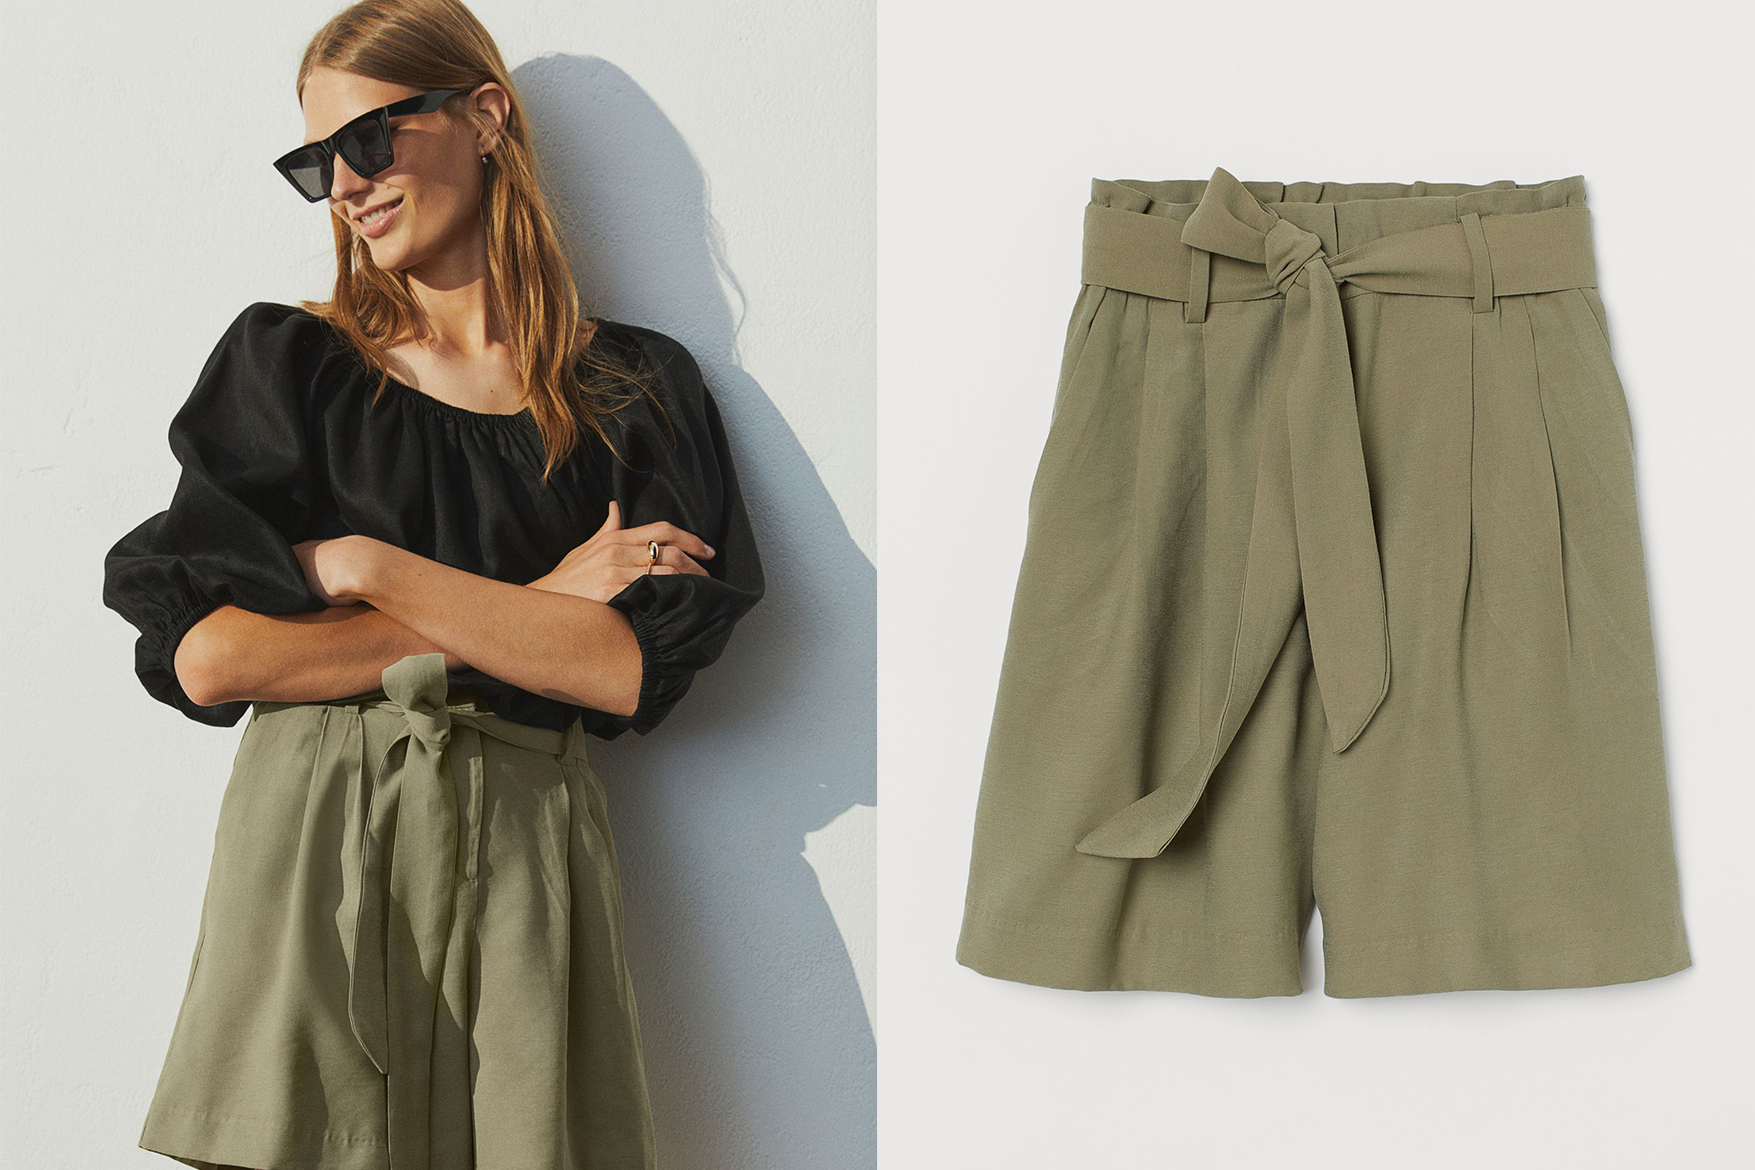 H&M New Arrivals Look Wonderfully Expensive summer